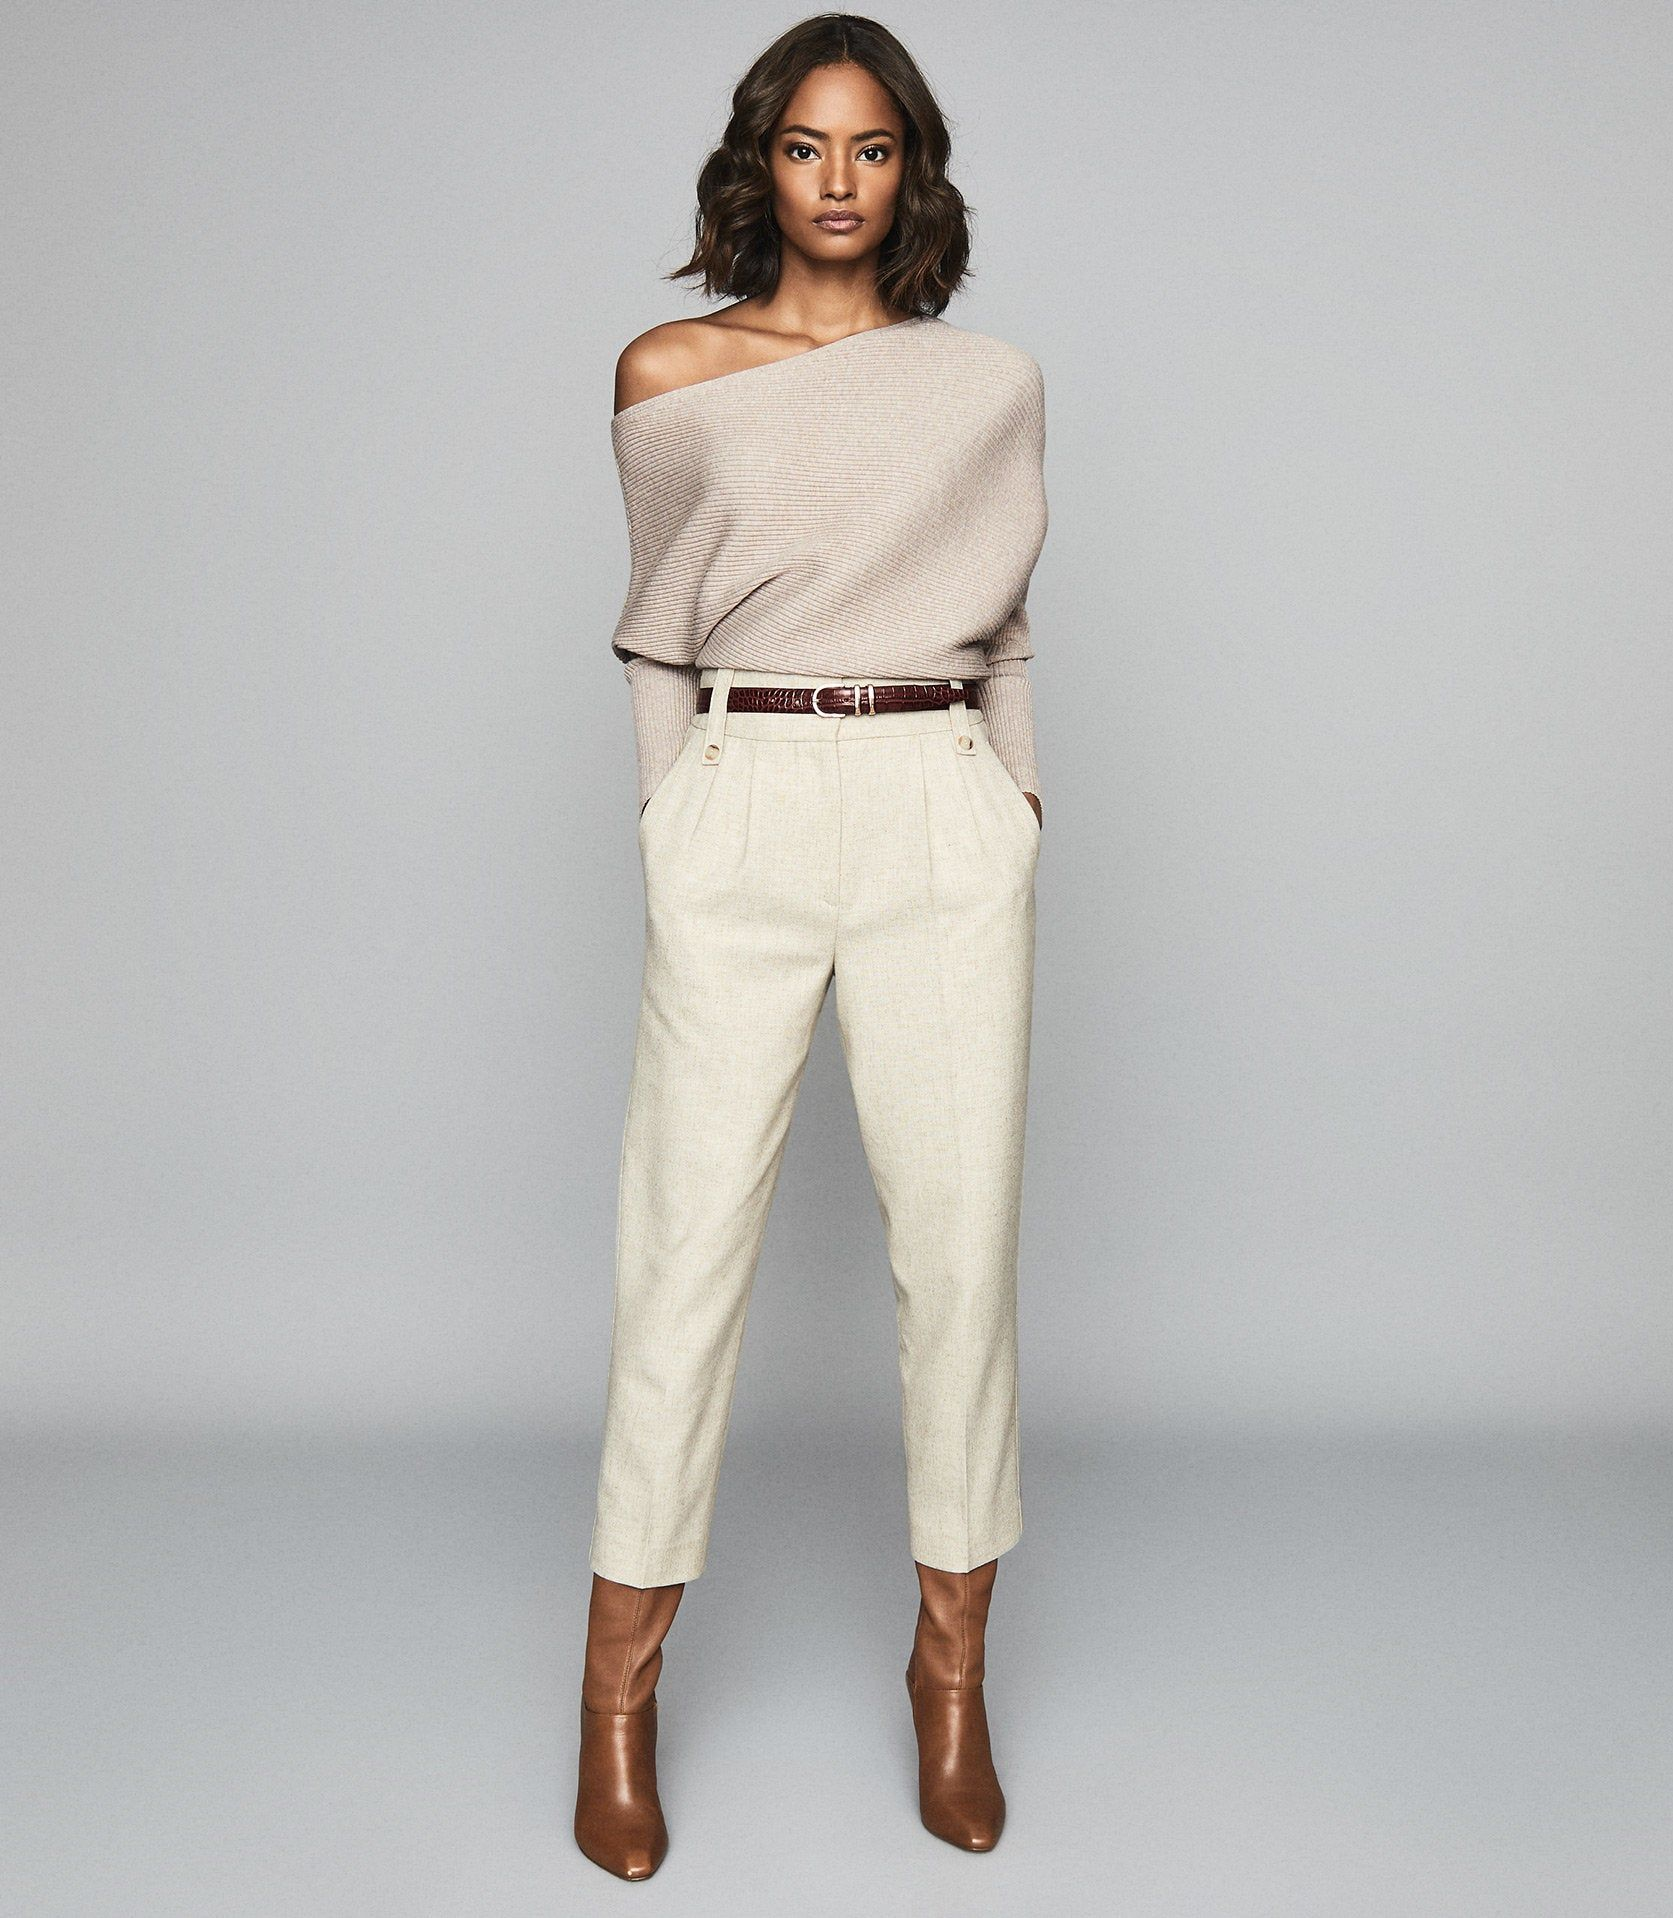 Reiss Lorna - Asymmetric Knitted Top in Stone, Wom